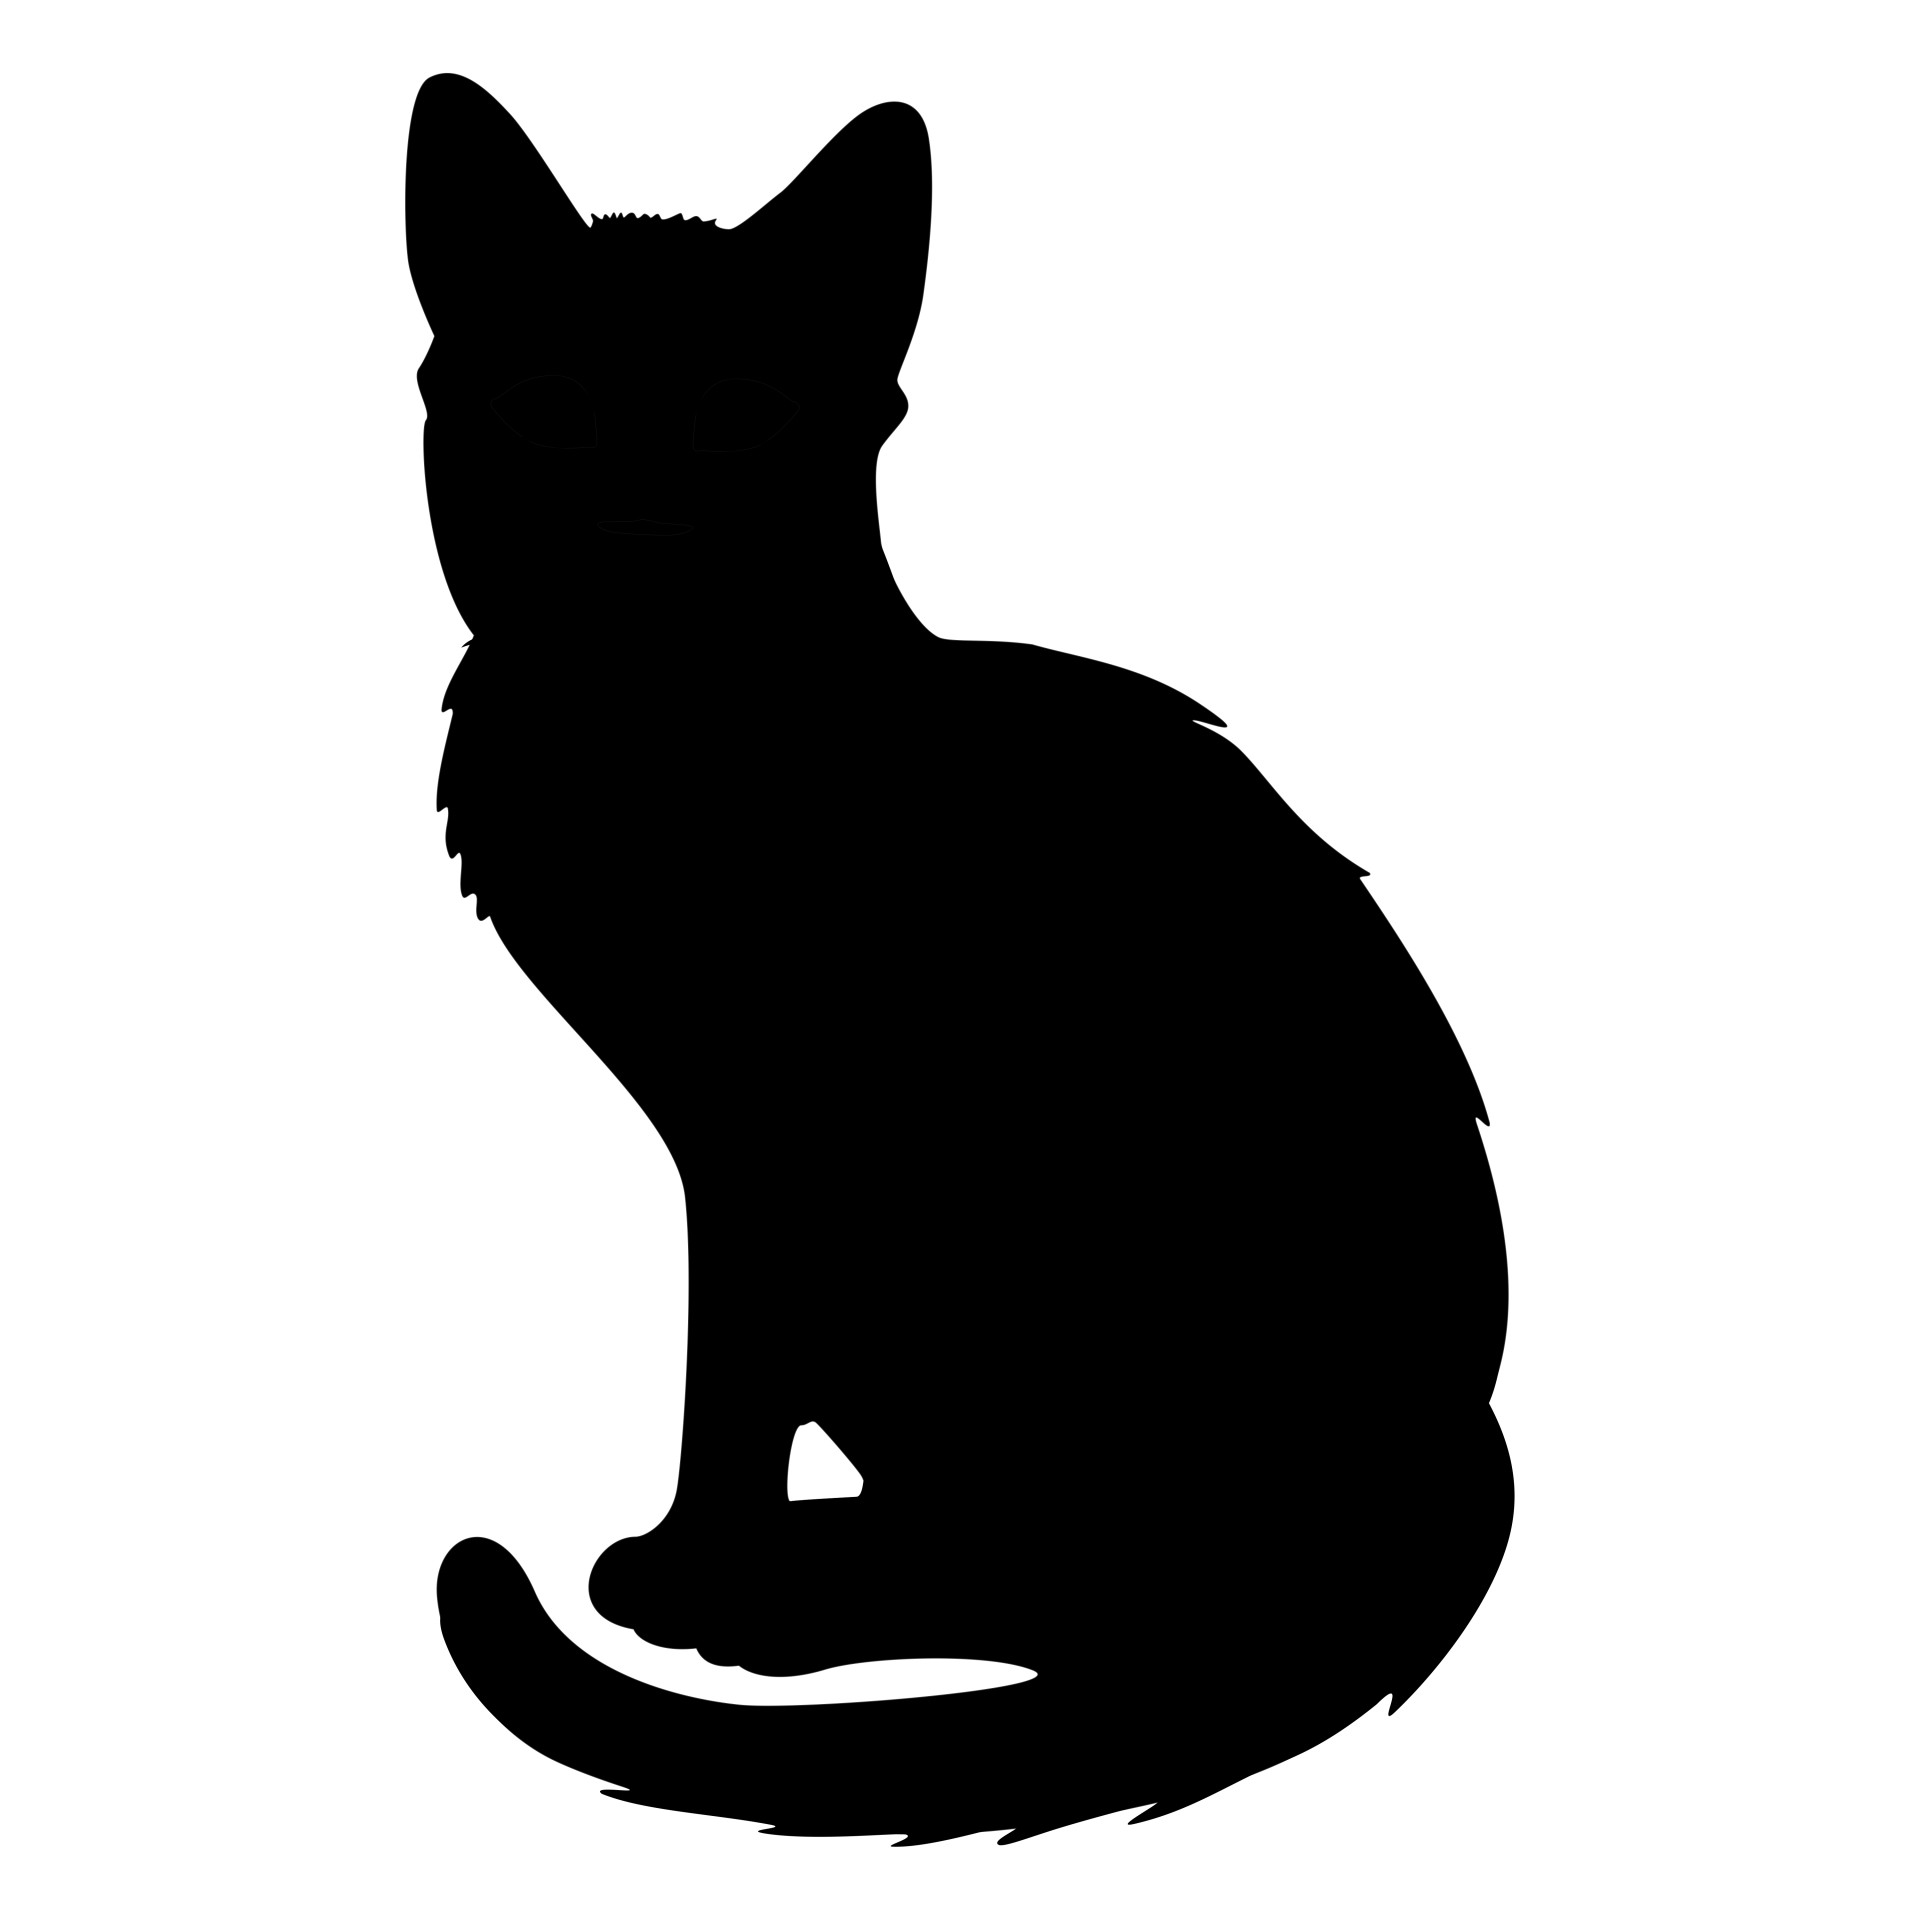 1920x1920 Cat Silhouette 2 Free Stock Photo